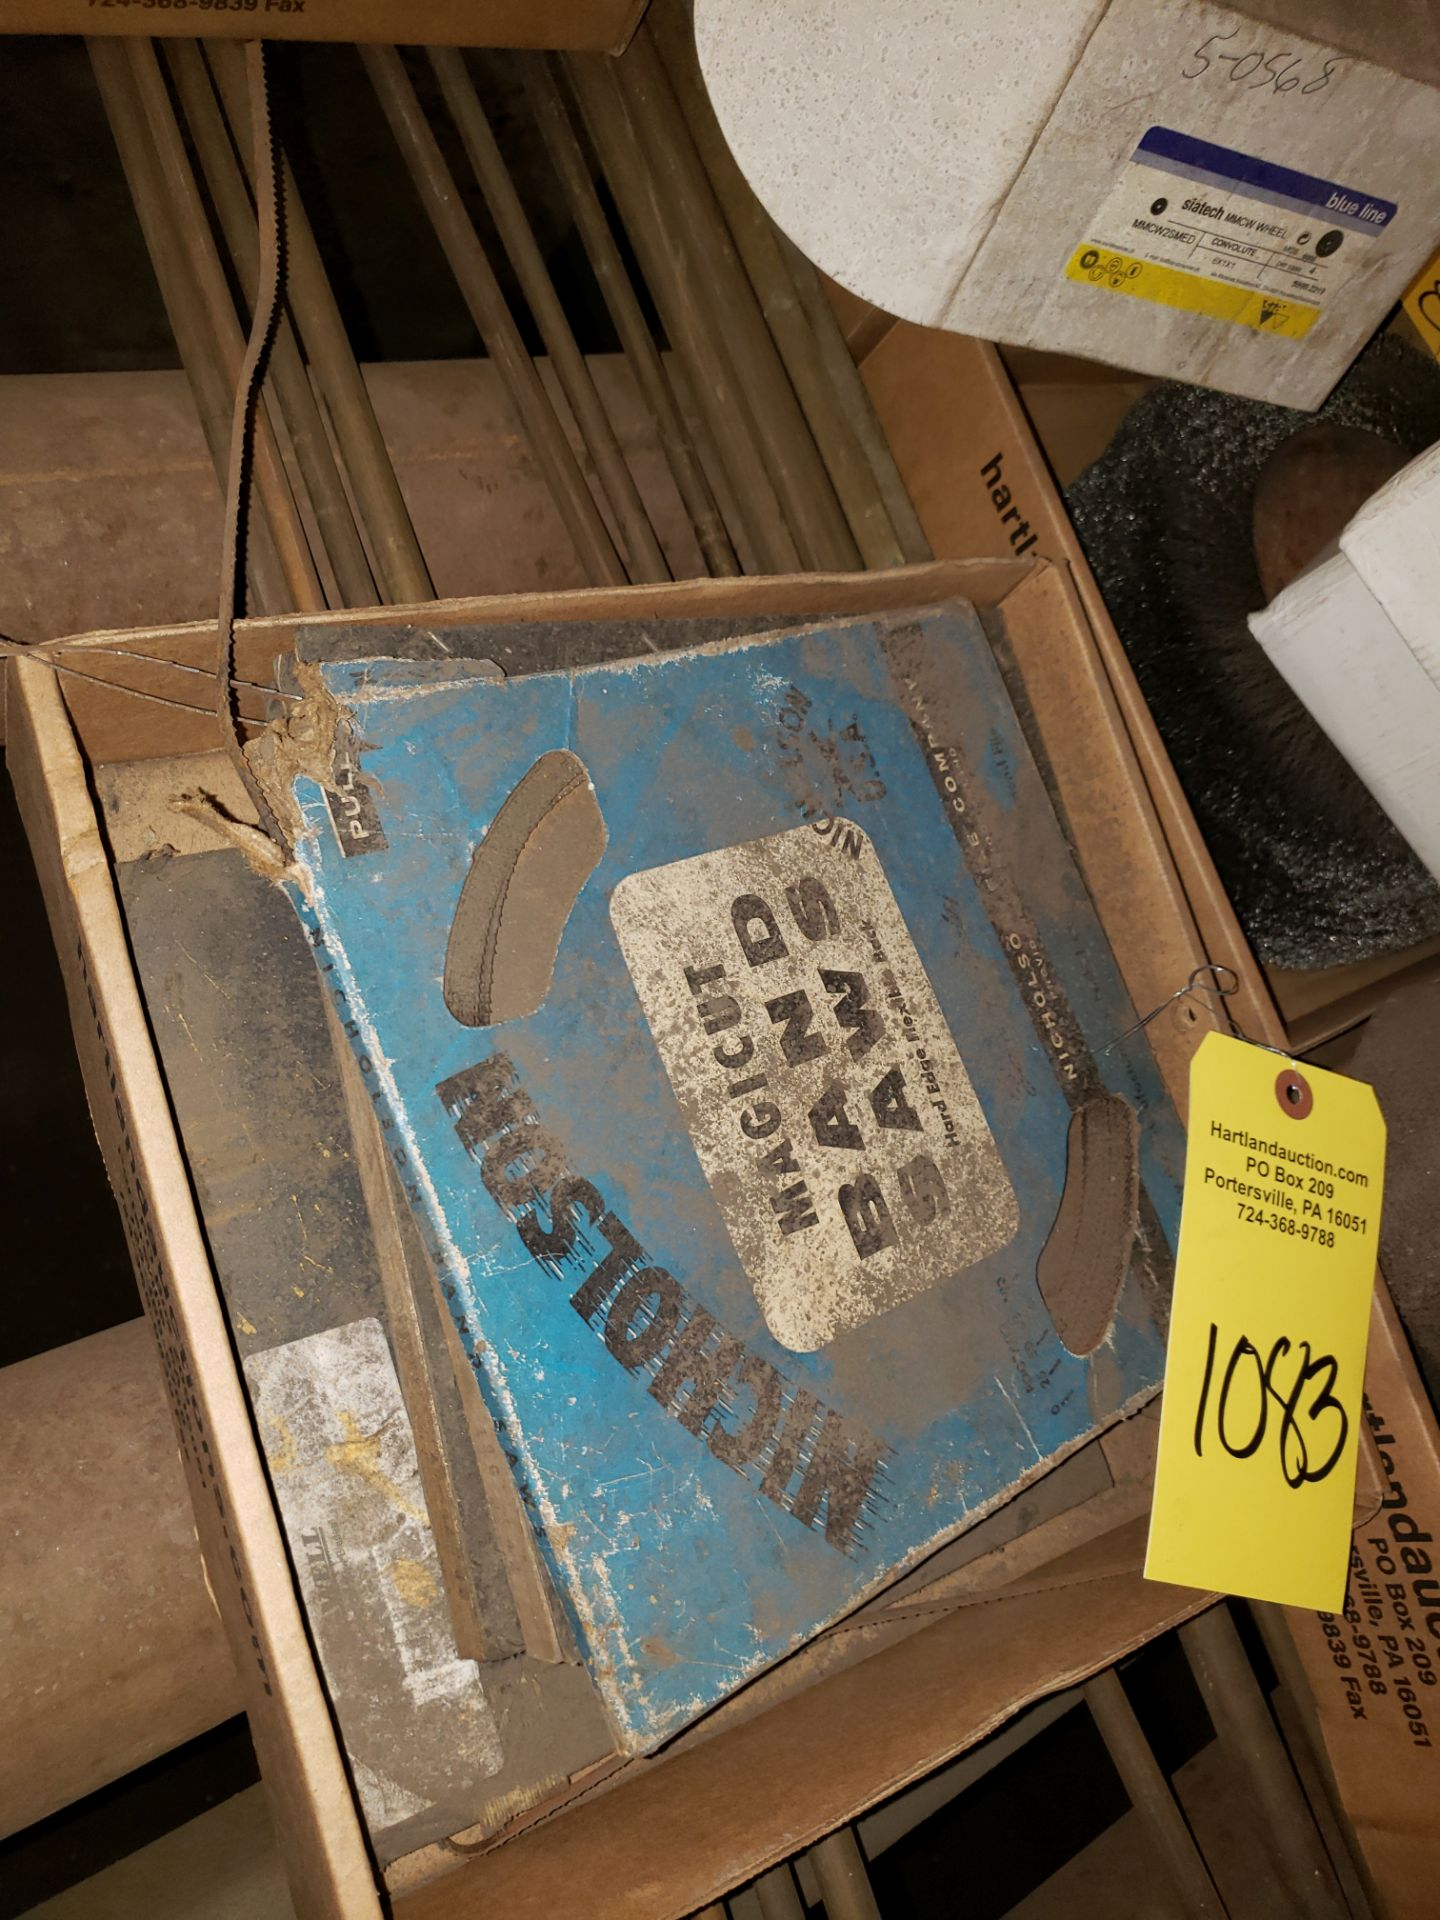 Lot 1083 - NEW BANDSAW BLADES